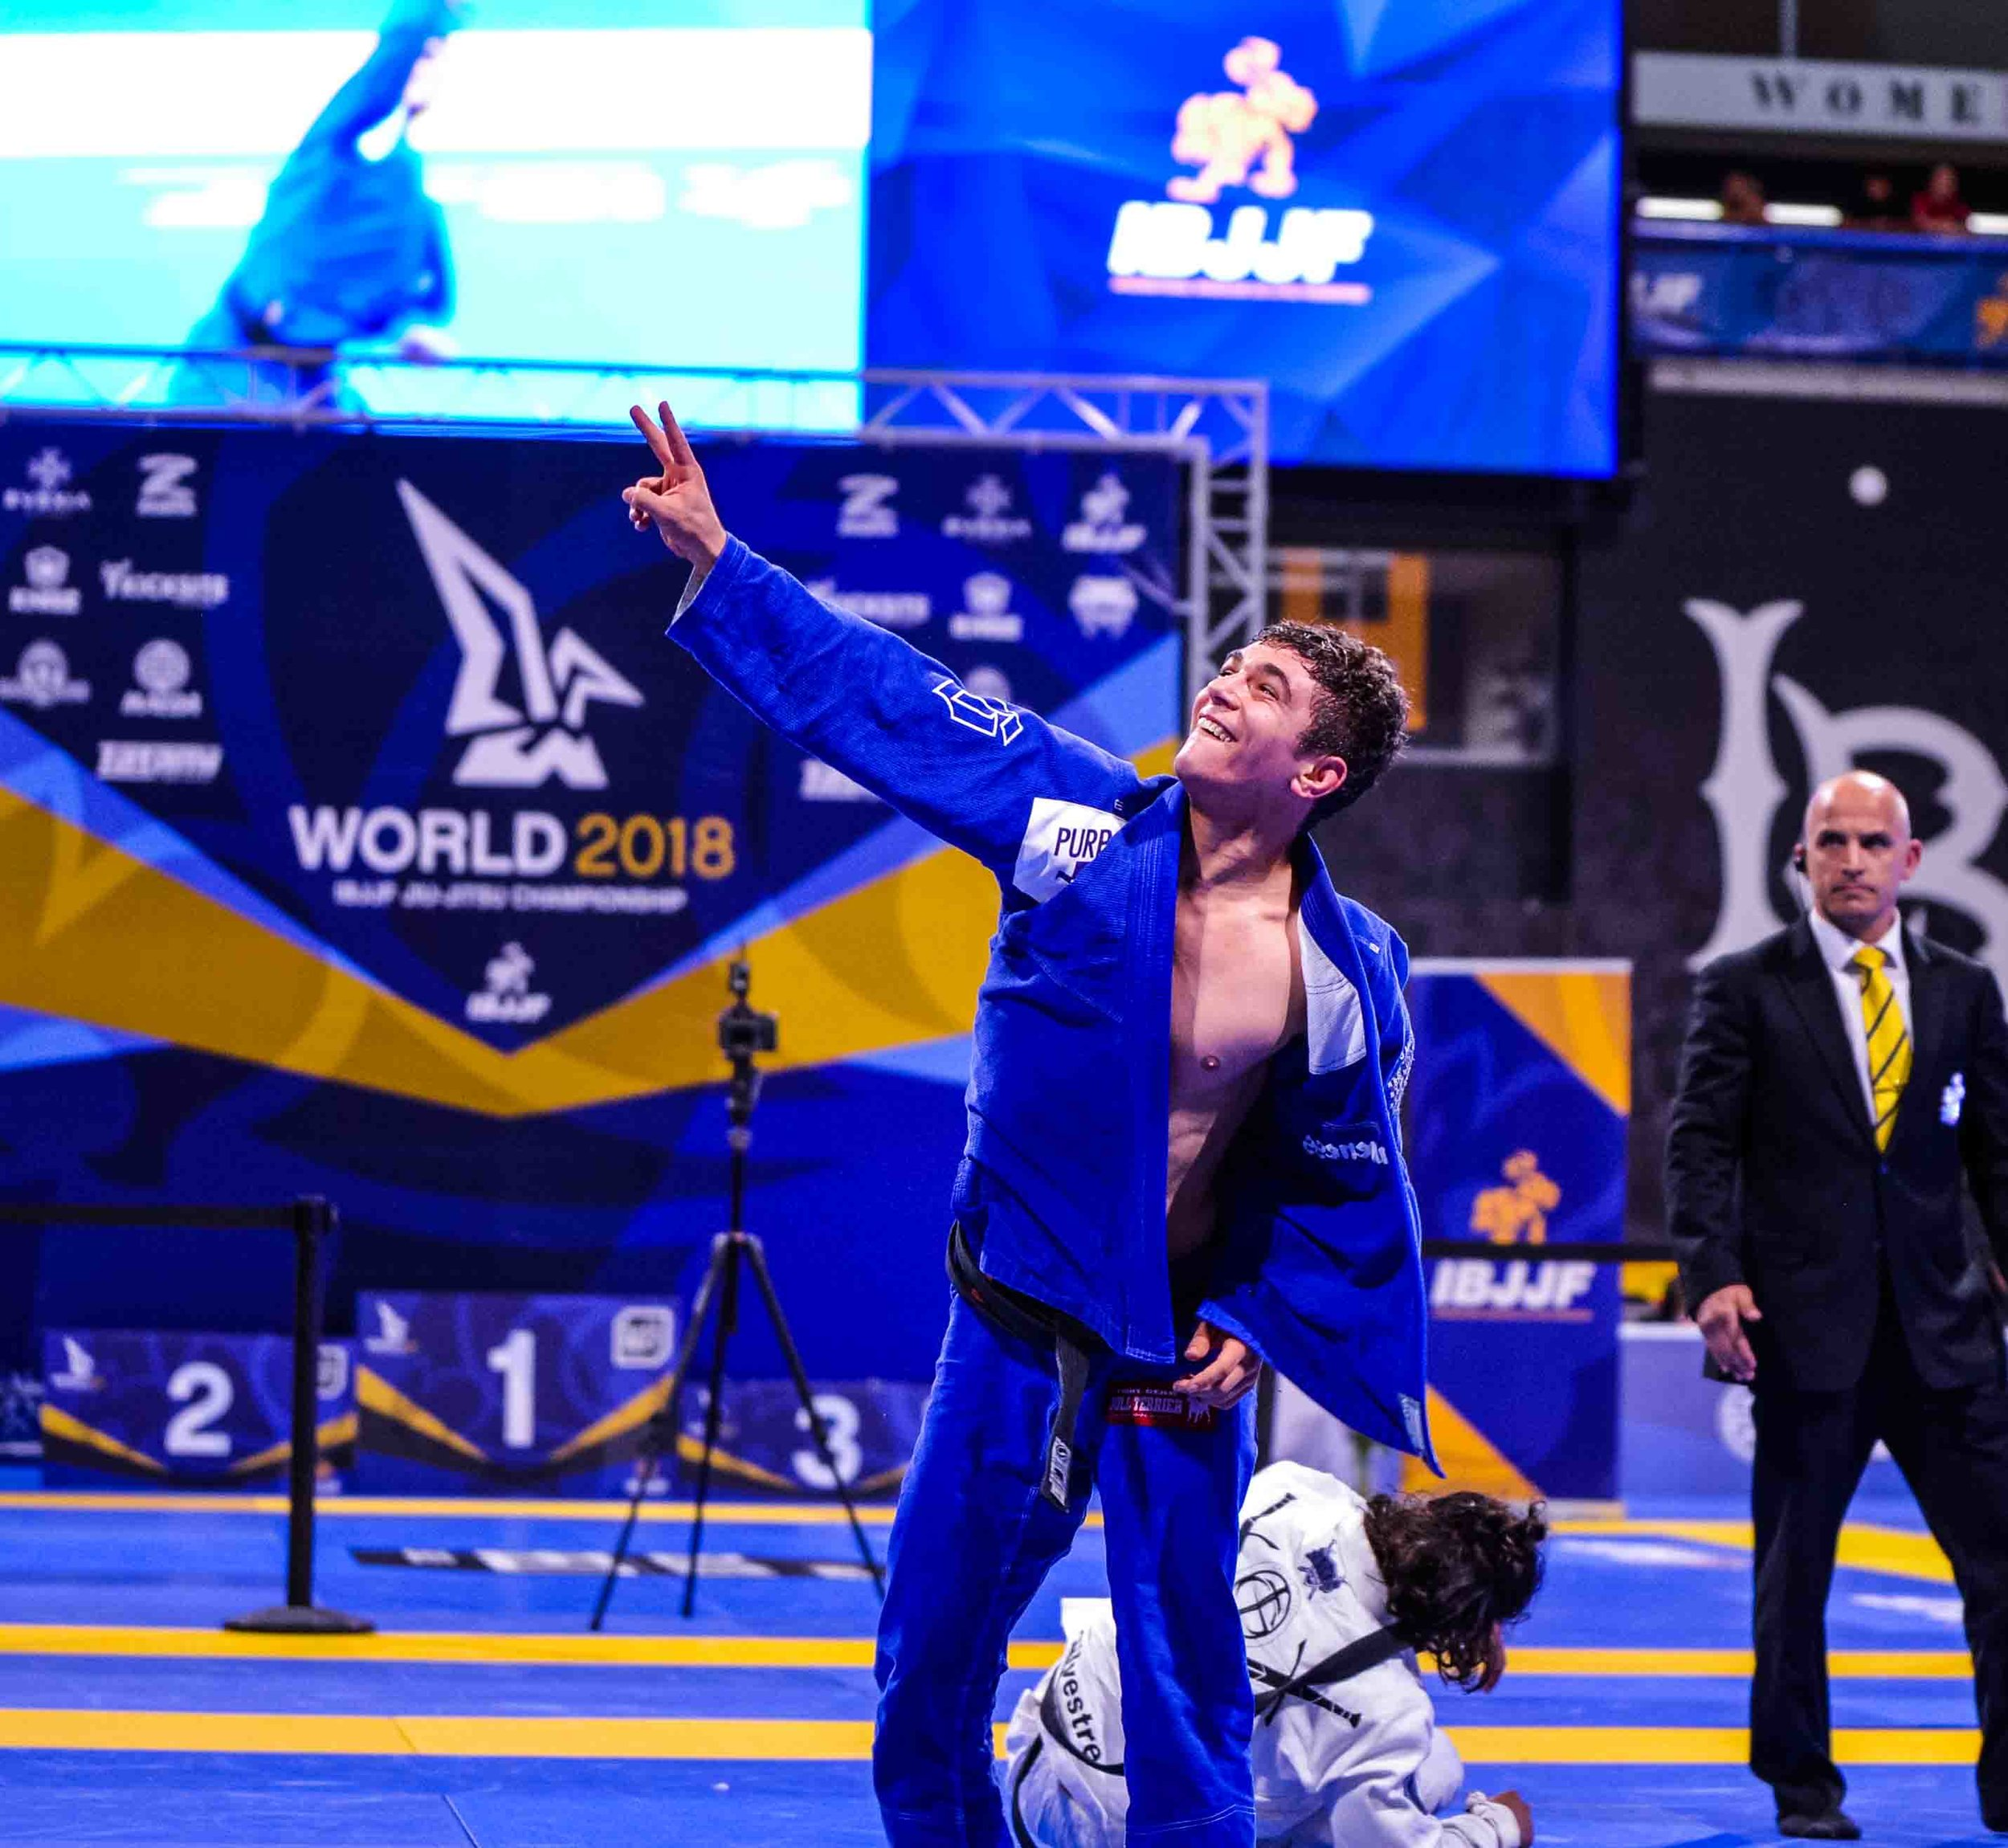 Mikey Musumeci becomes the first (and only so far) American to win a Black Belt World Championship twice by defeating Ary Farias.